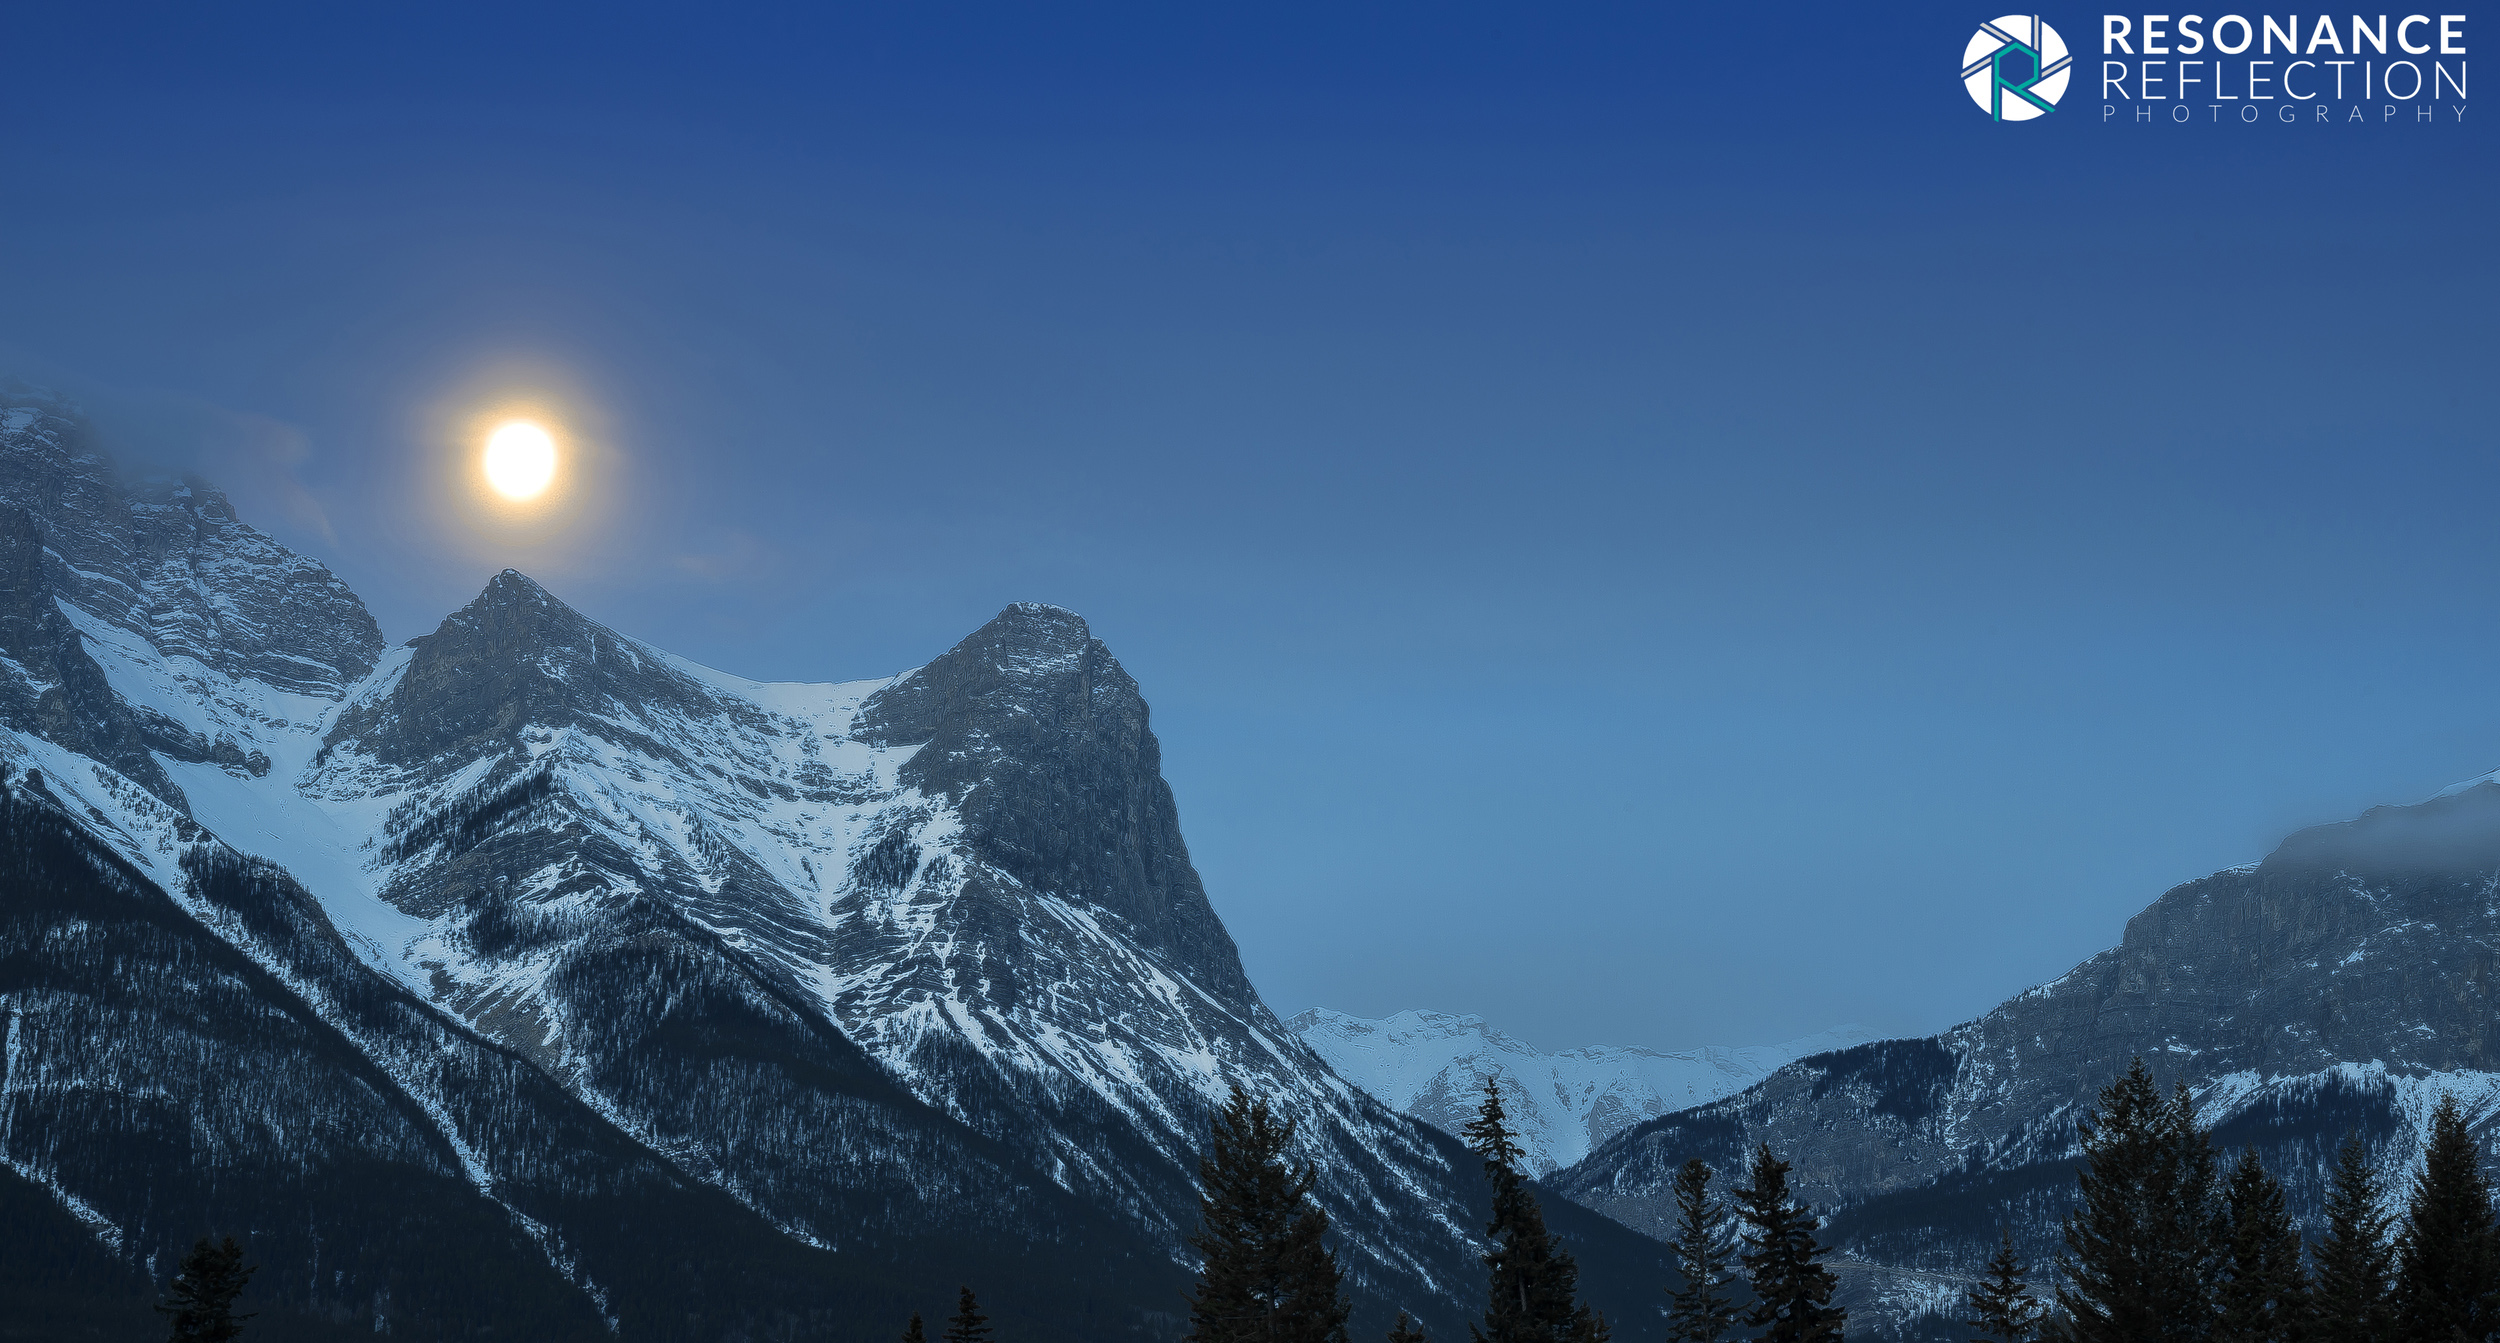 Moon Rising Over The Mountains